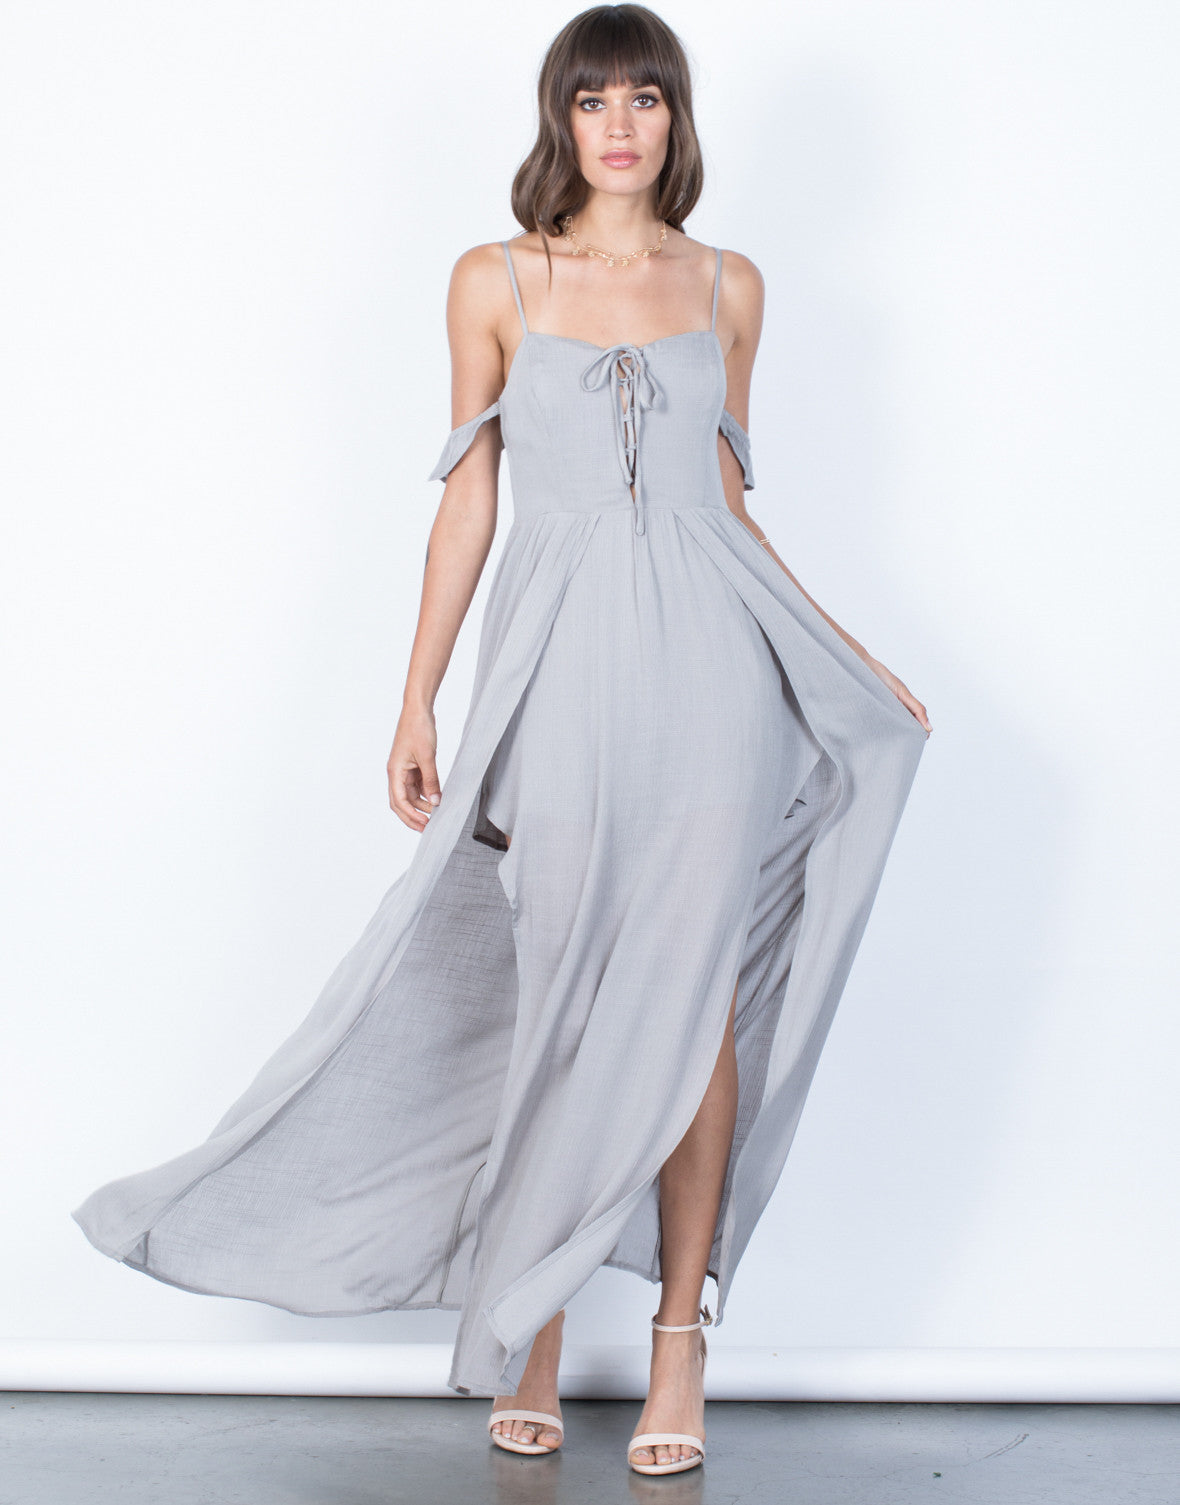 527bab14369 Inner Goddess Maxi Romper - Light Gray Maxi Dress - Ruffled Off the ...